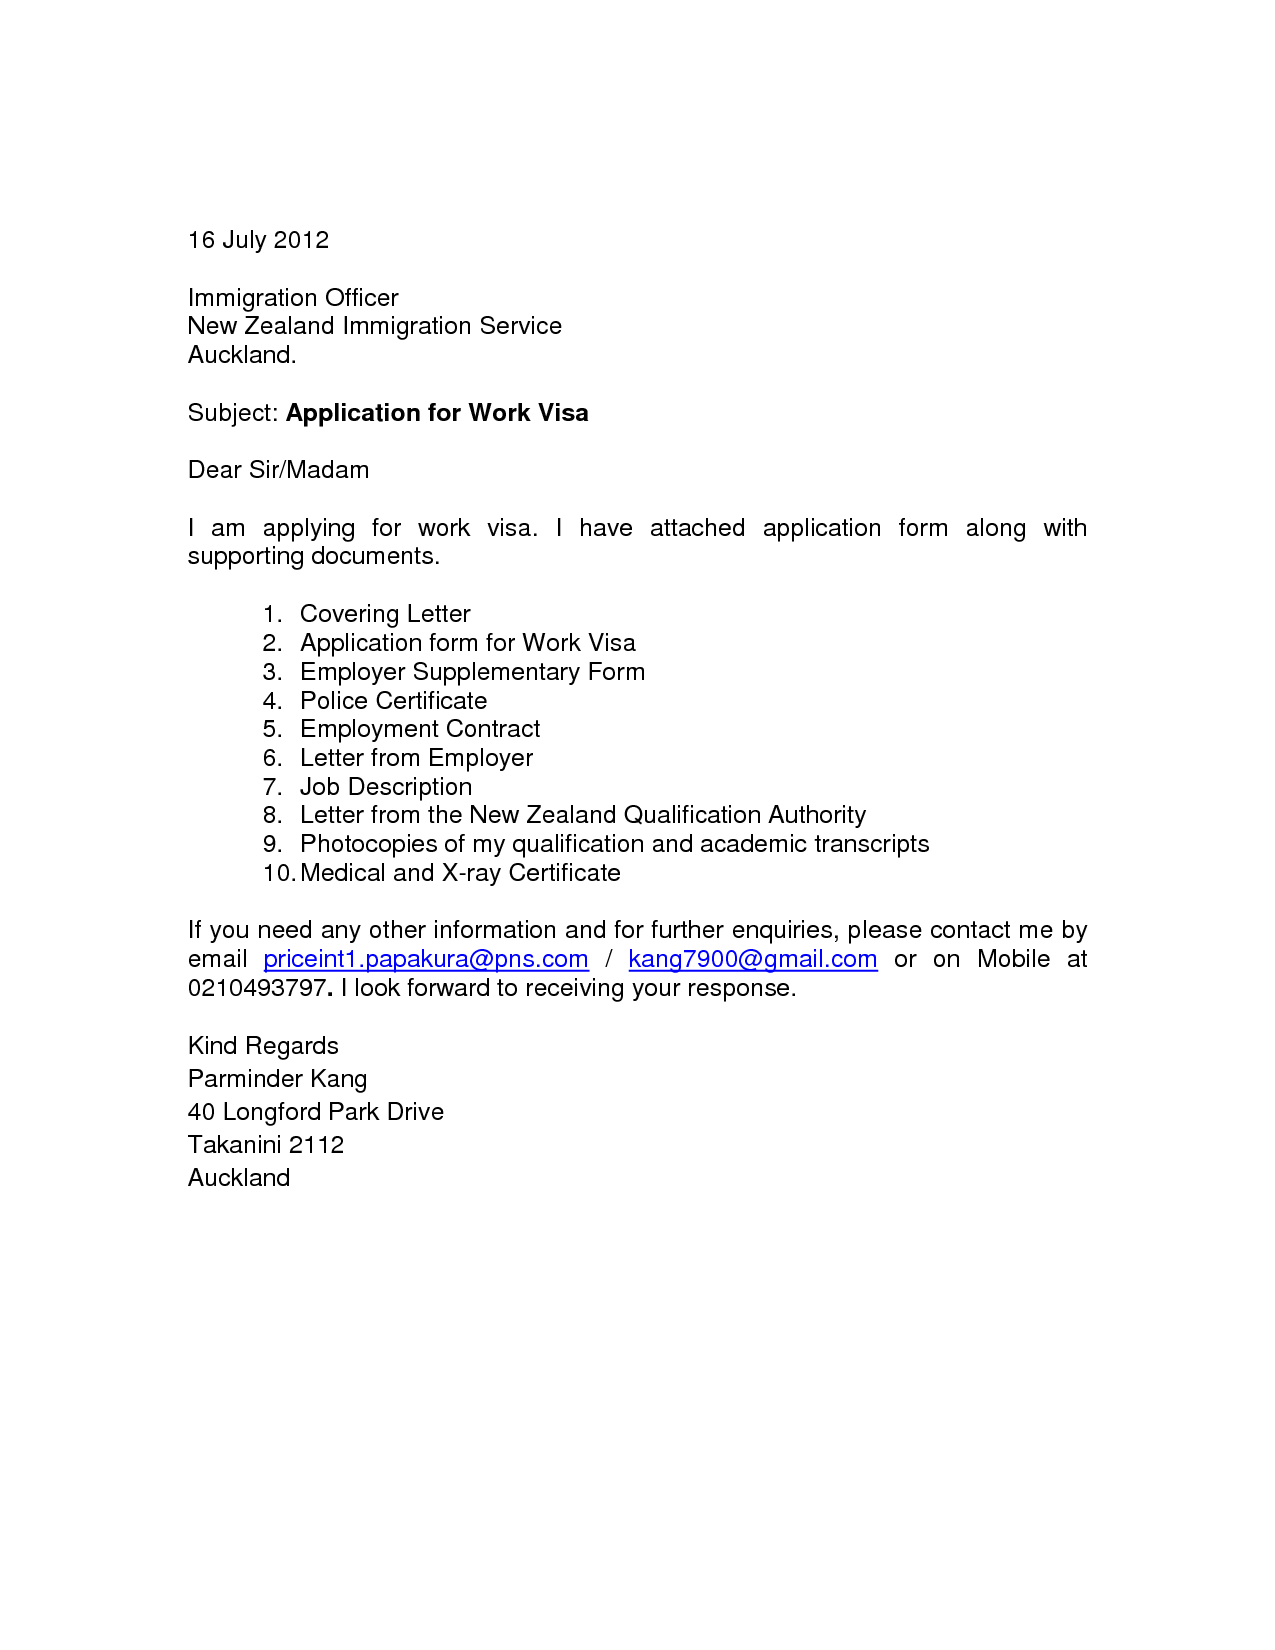 sample resume letters job application writing job cover letter 22